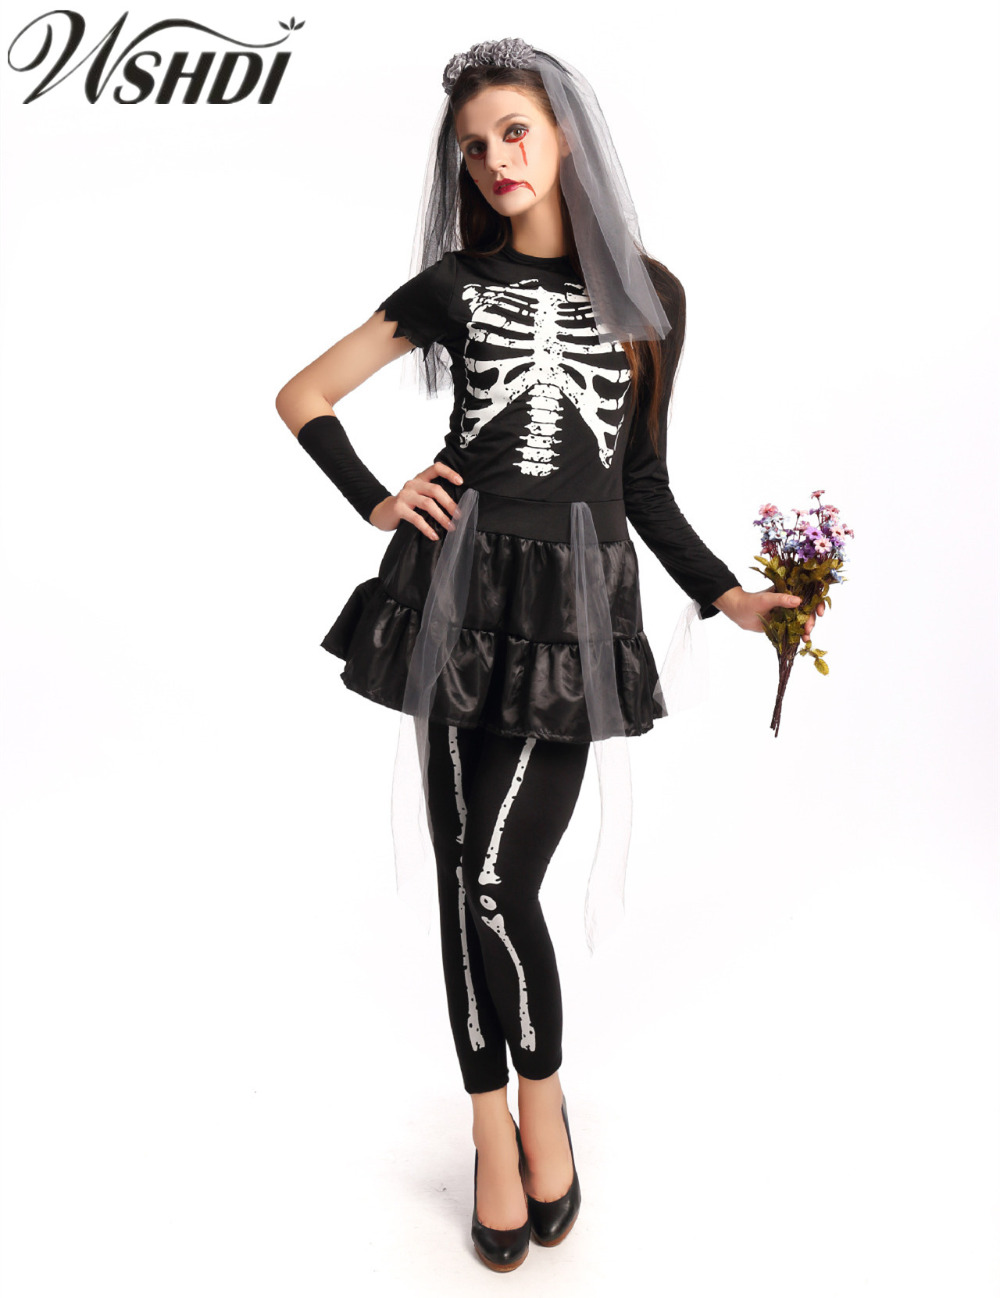 Sexy Bride Halloween Costume Promotion-Shop for Promotional Sexy ...